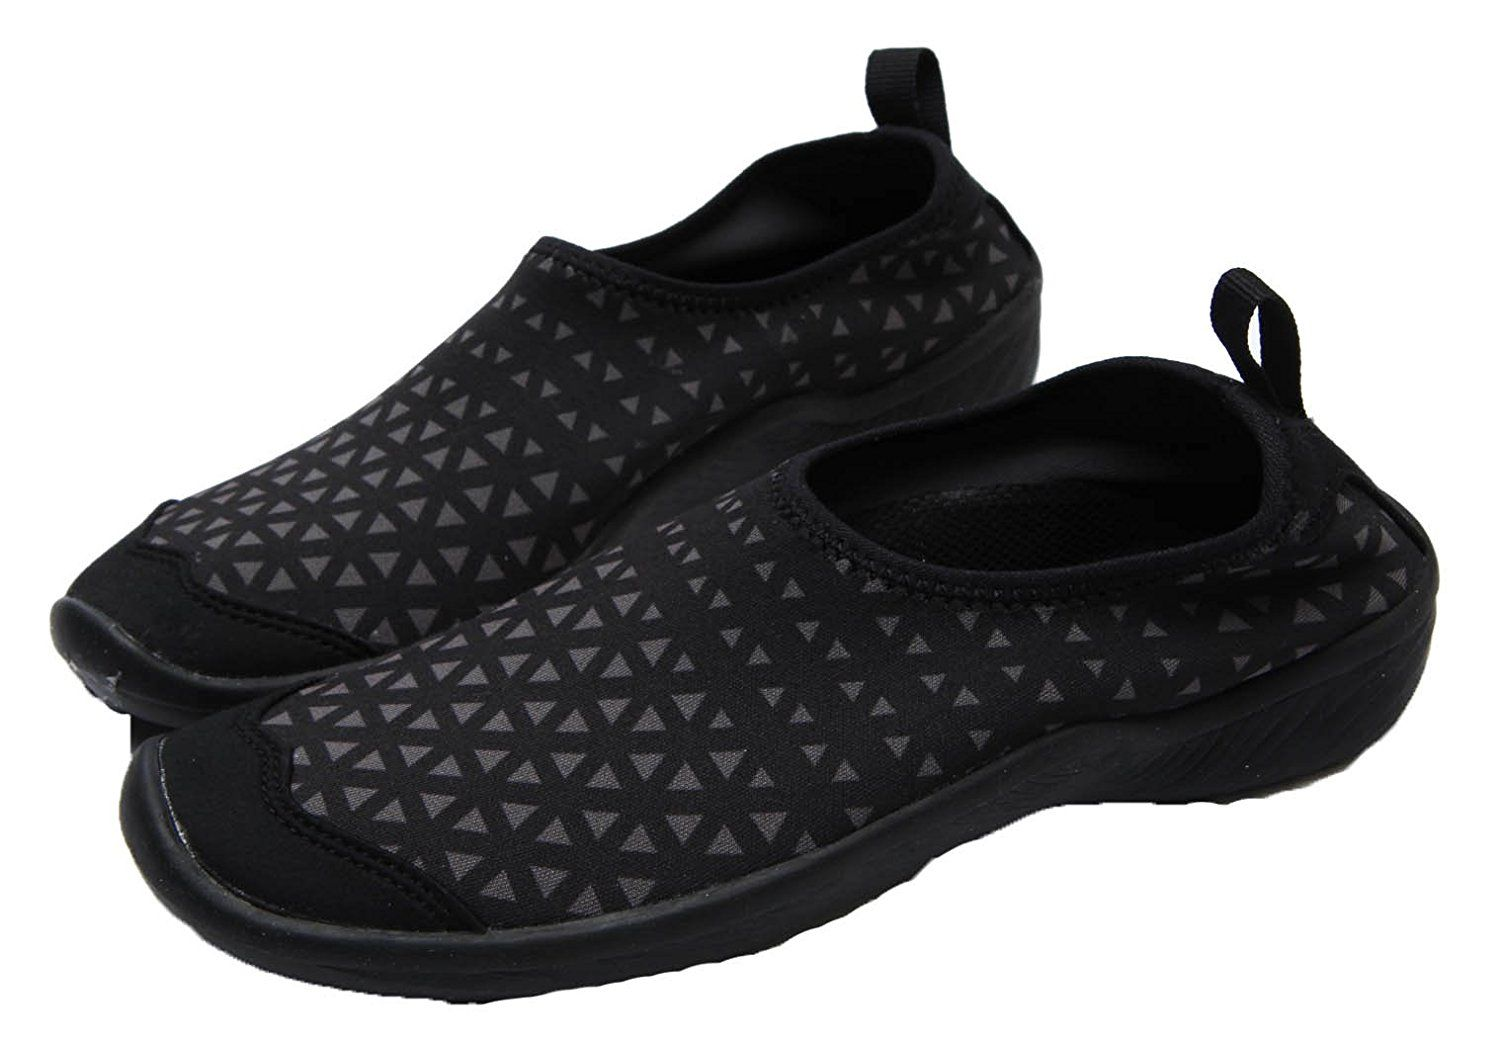 Women's Athletic Water Aqua Surfwalker Shoes (6.5, Black) ** You can get  additional details at the image link. | Water shoes women, Hiking women,  Shoes